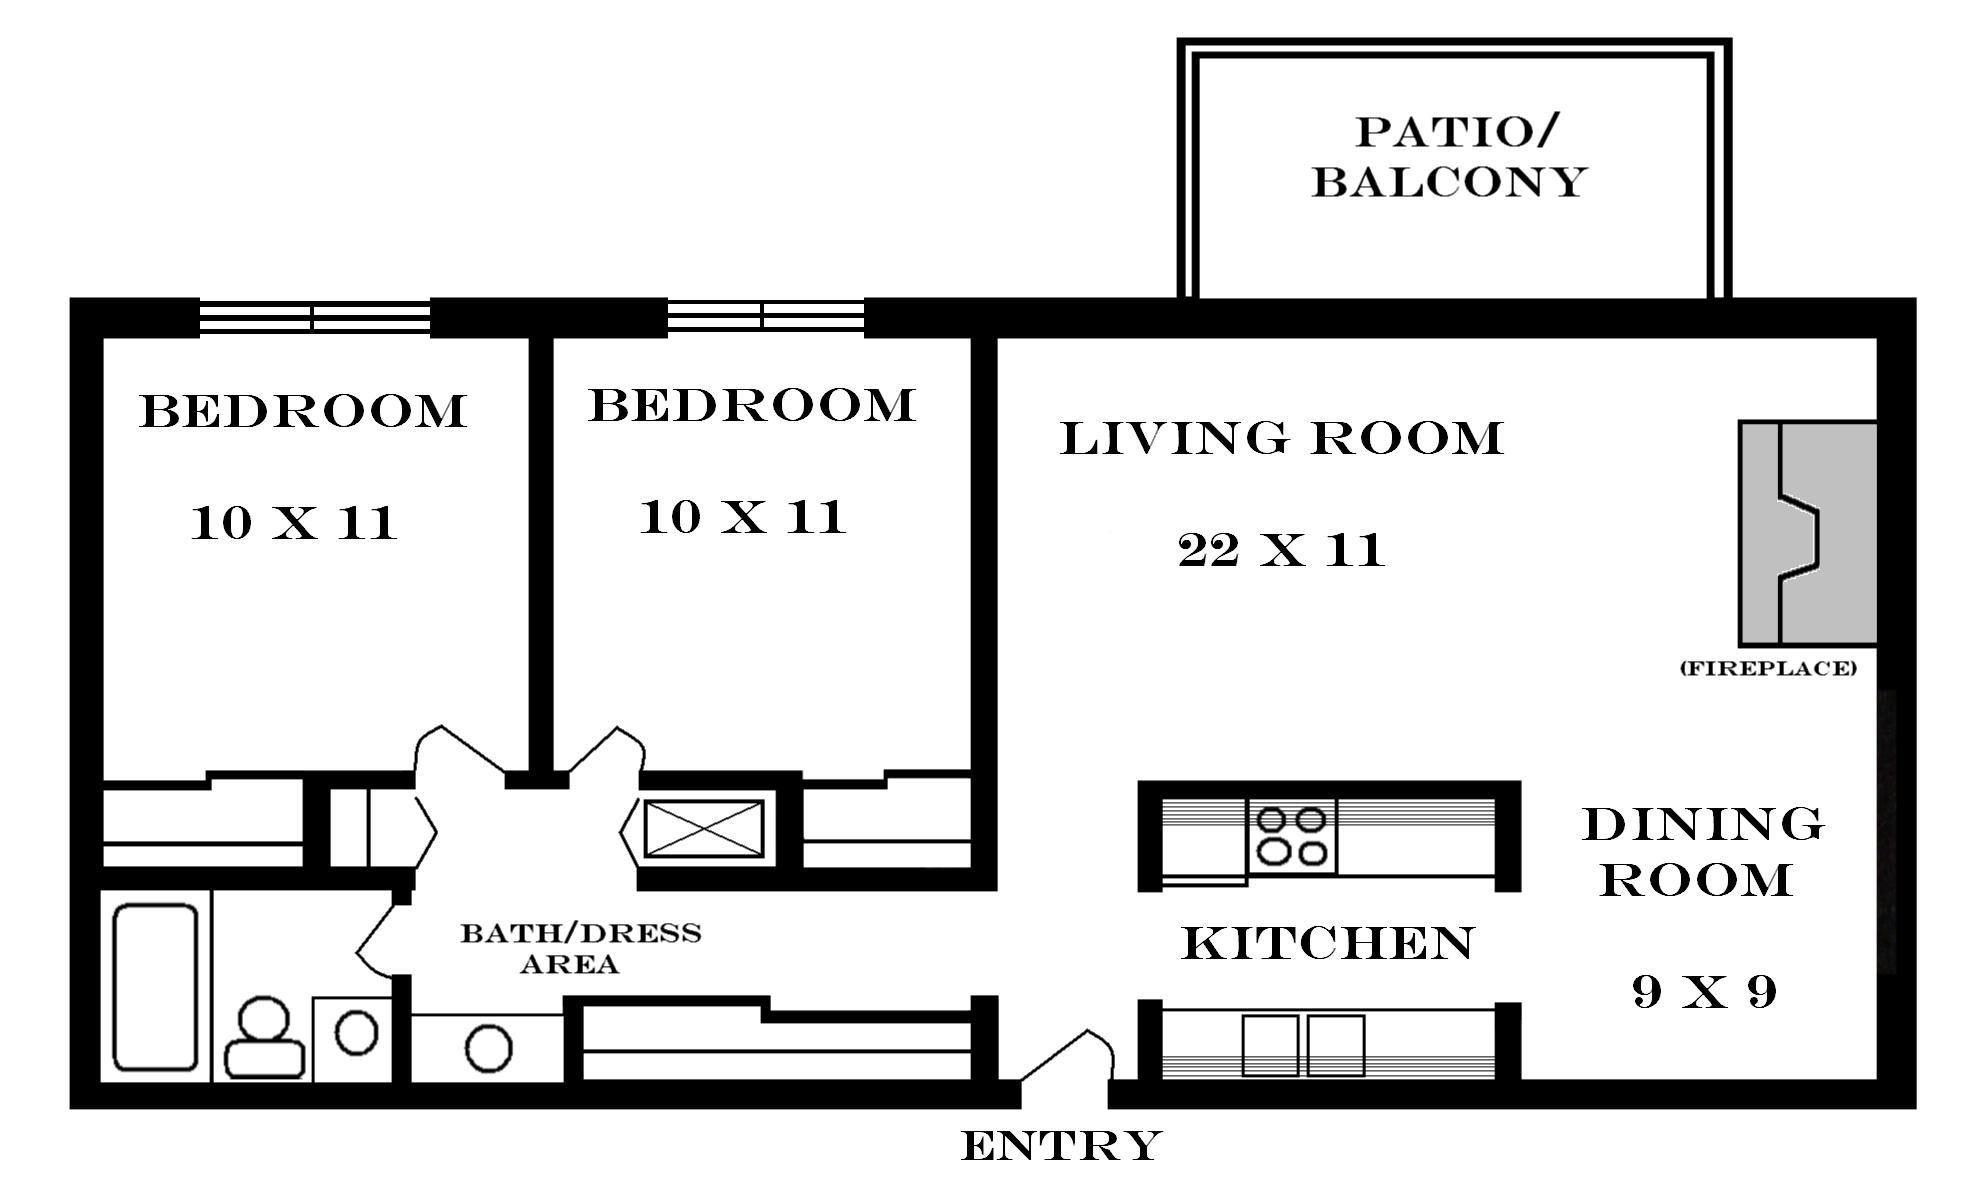 Small house floor plans 2 bedrooms 900 tiny houses for Three bedroom apartment layout